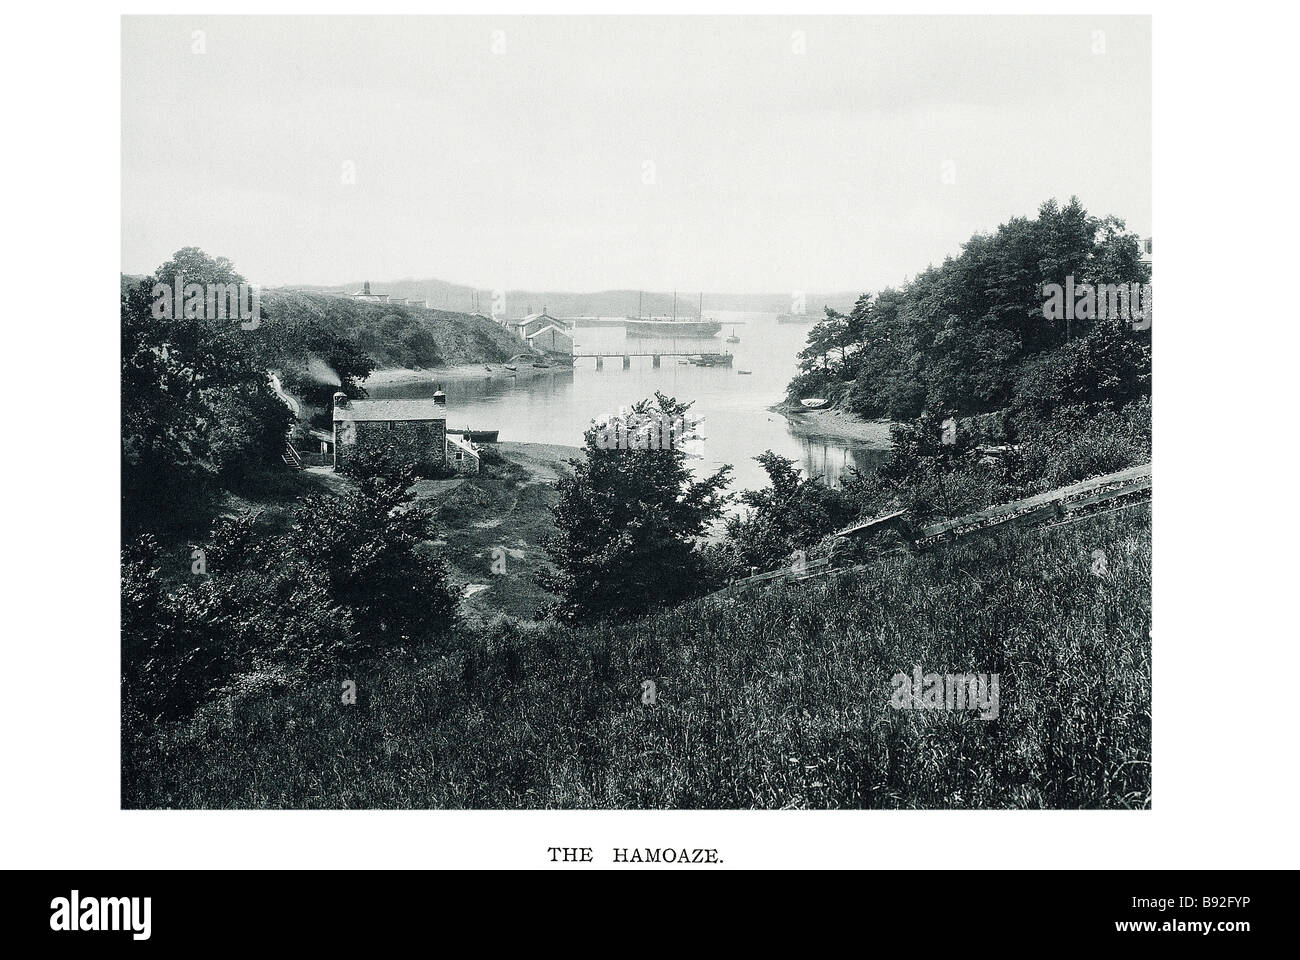 The Hamoaze is an estuarine stretch of water at the point where the tidal River Tamar, the Rive - Stock Image